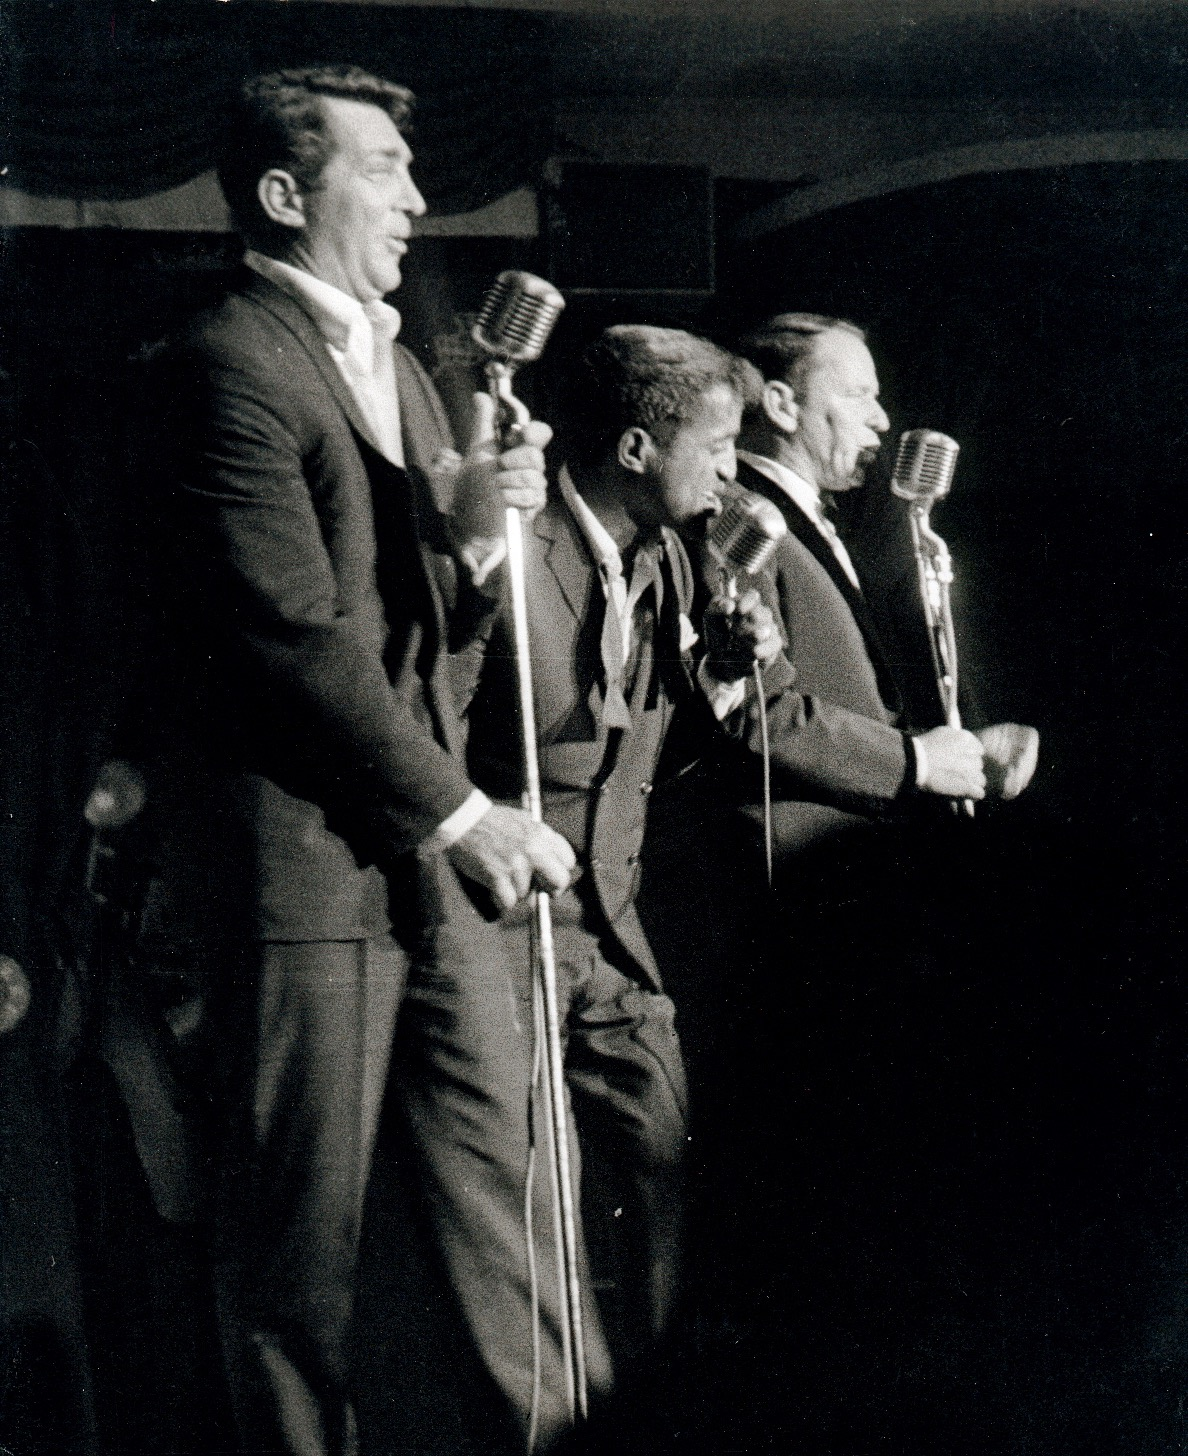 rat-pack-500-club-atlantic-city-don-altobell